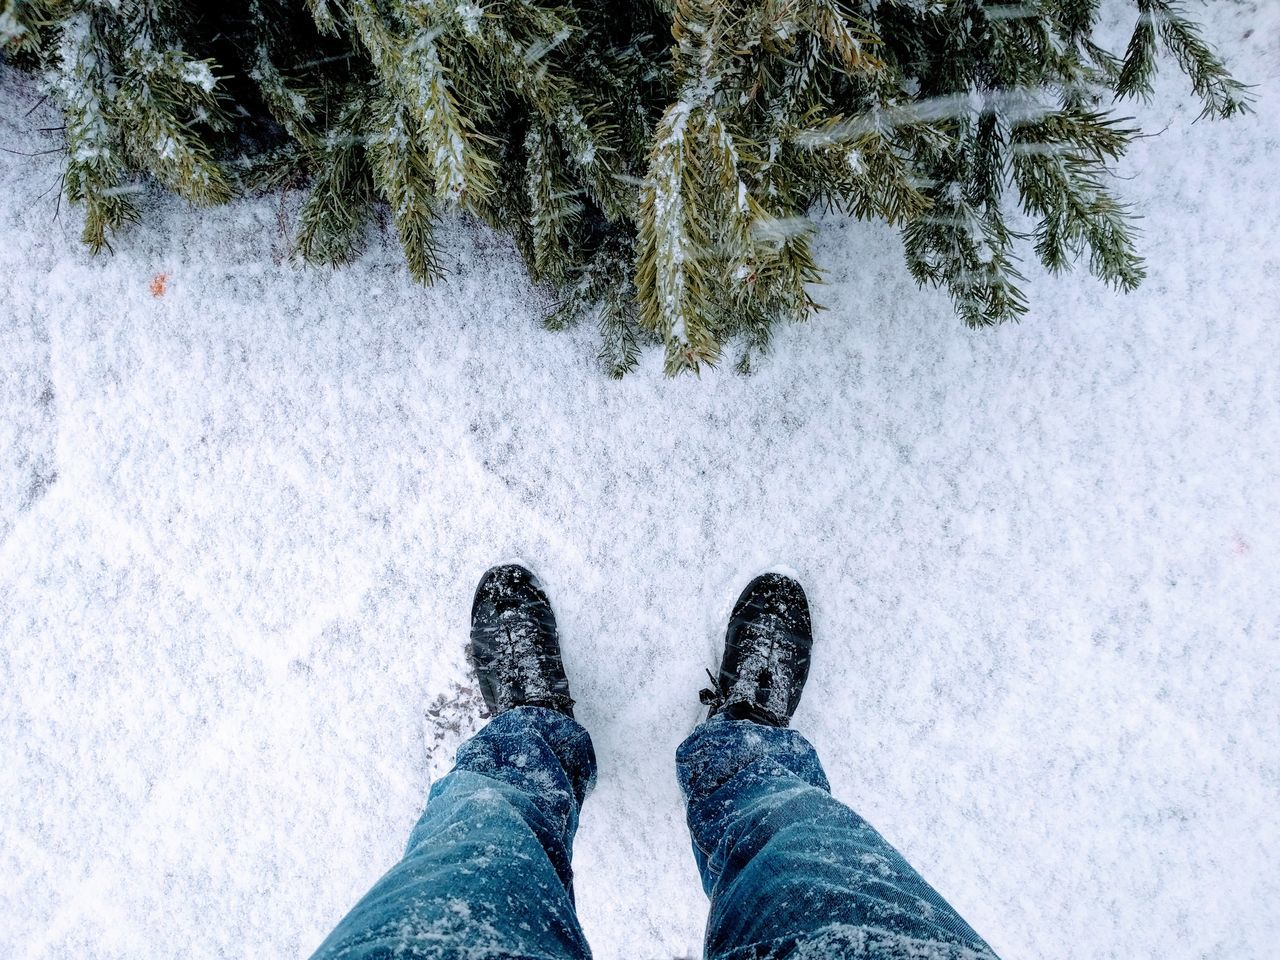 Human Leg Low Section Human Body Part Standing One Person Personal Perspective Real People Shoe Day Outdoors Close-up People Adults Only Adult Winter Wonderland Wintertime Winter Trees Winter Xmas Tree Berliner Ansichten Berlin Snow Snow ❄ Snowing First Snow Fresh On Market 2017